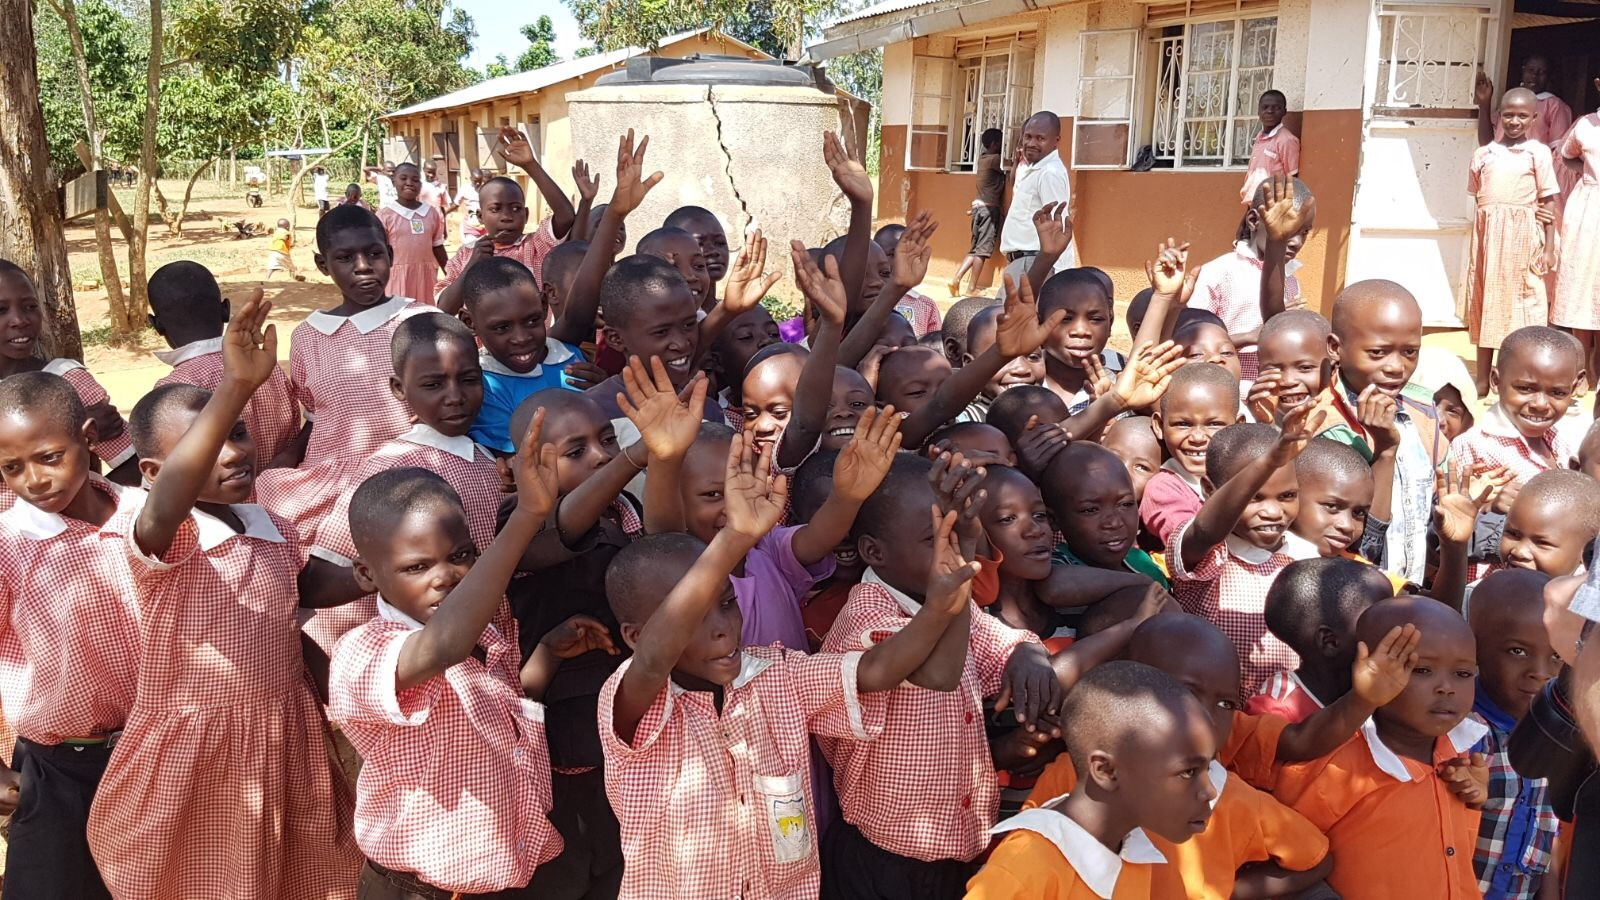 School kids in Lyantonde, Uganda